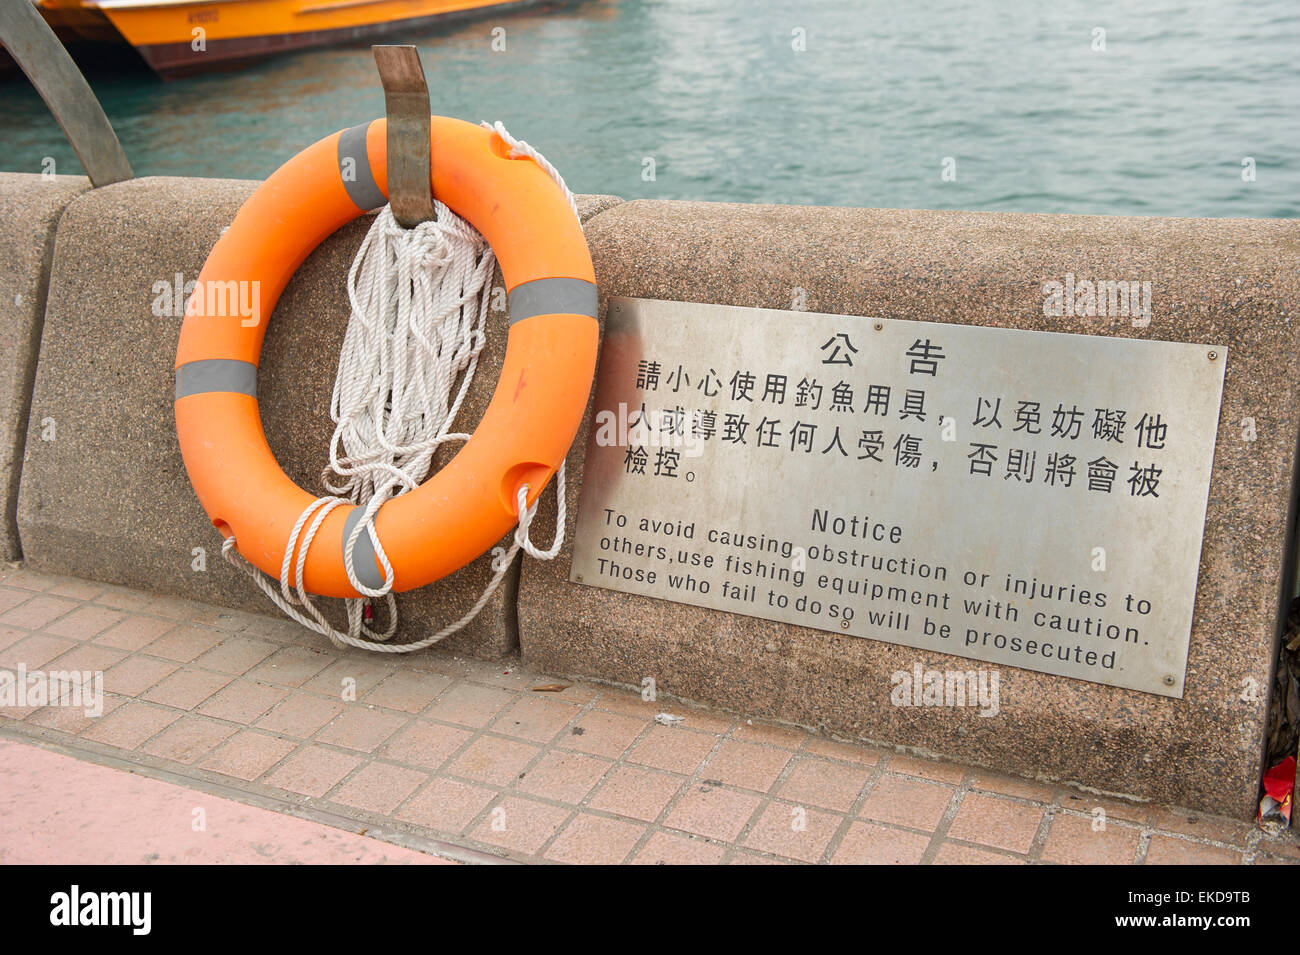 Lifesaver mounted on curb of promenade with instructions on safety, Hong Kong - Stock Image